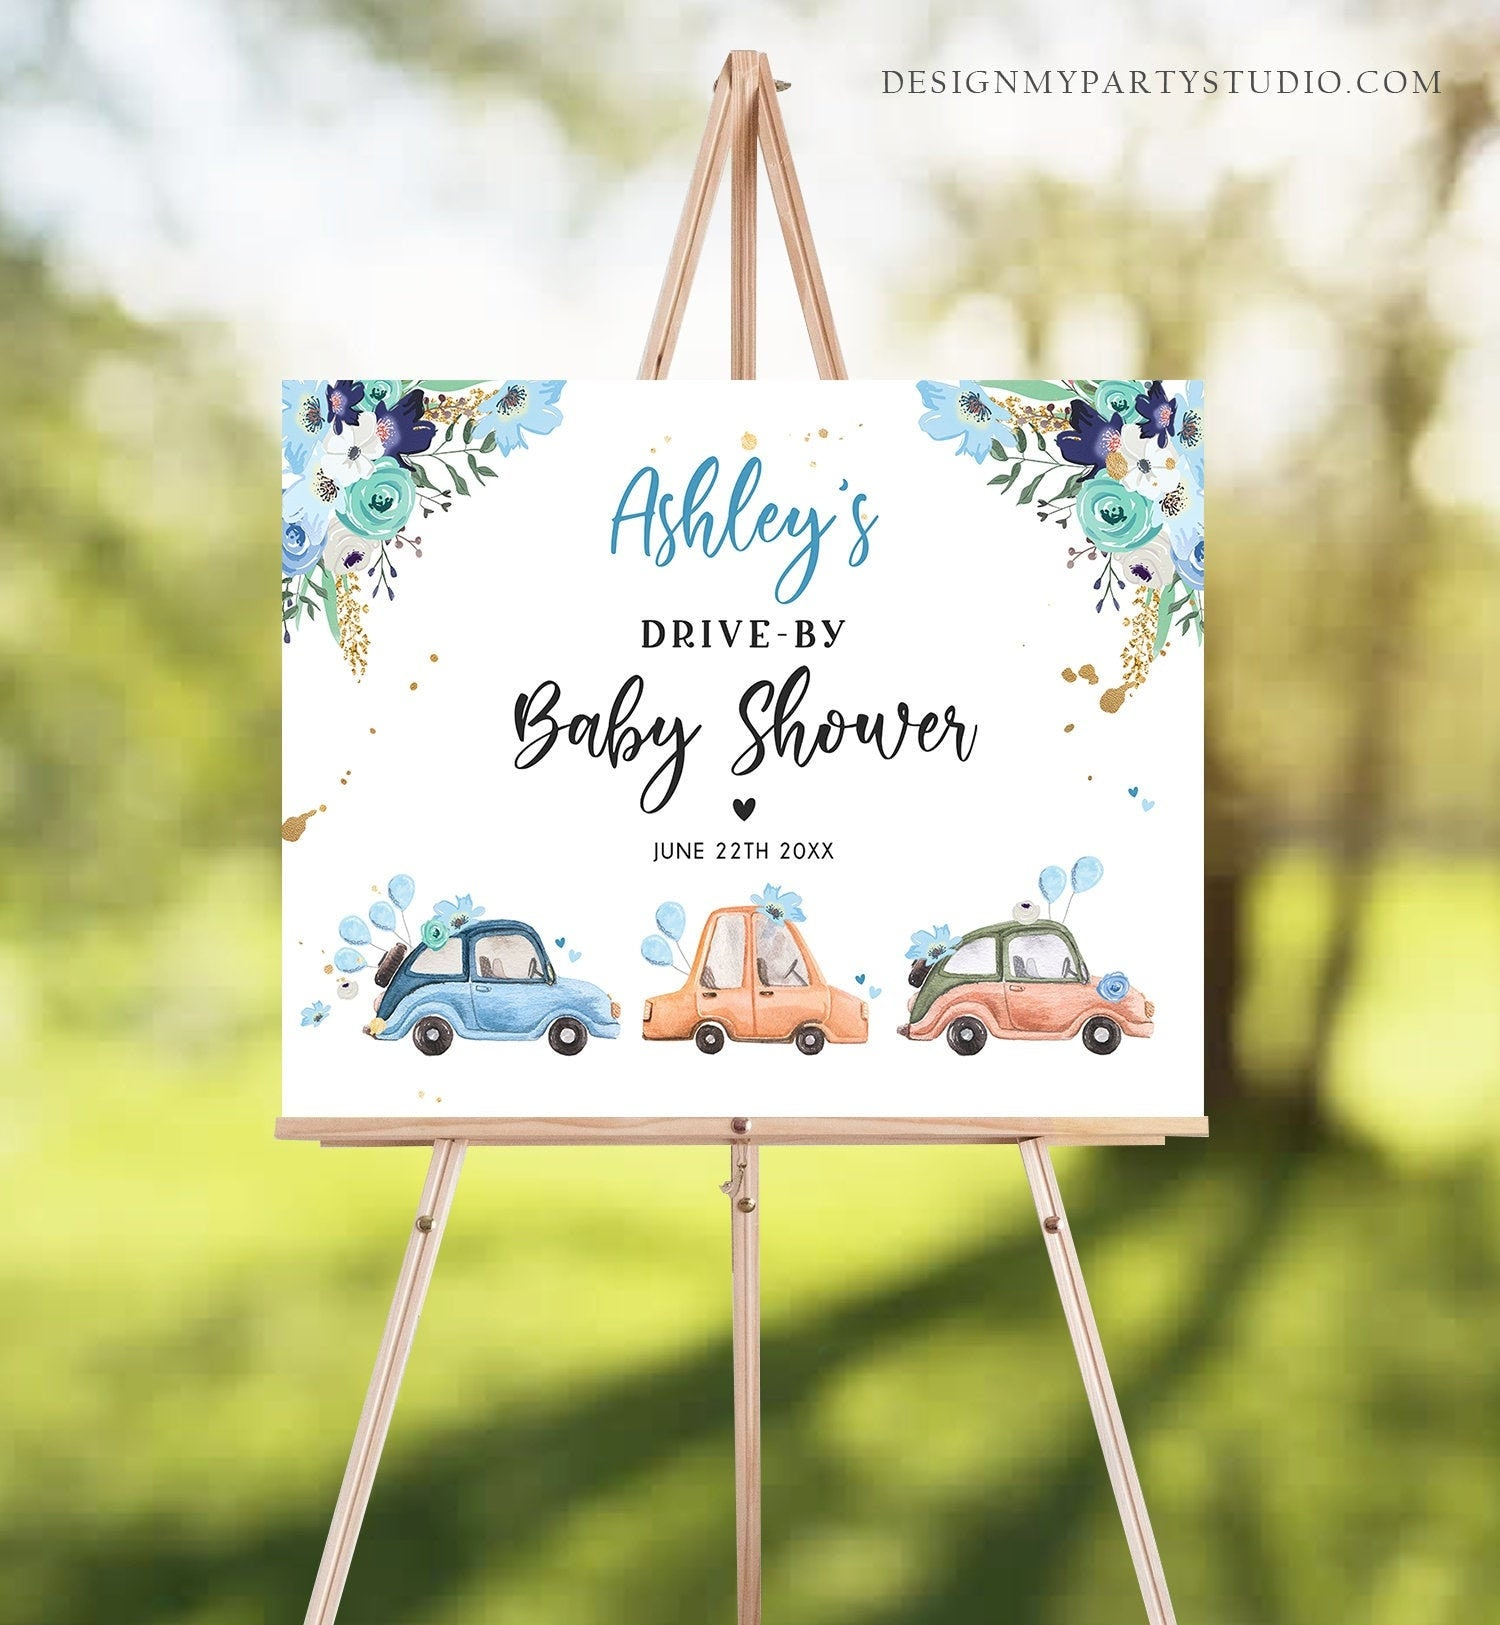 Editable Drive By Baby Shower Sign Welcome Navy Blue Gold Floral Boy Quarantine Party Drive Through Parade Yard Sign Corjl Template 0335